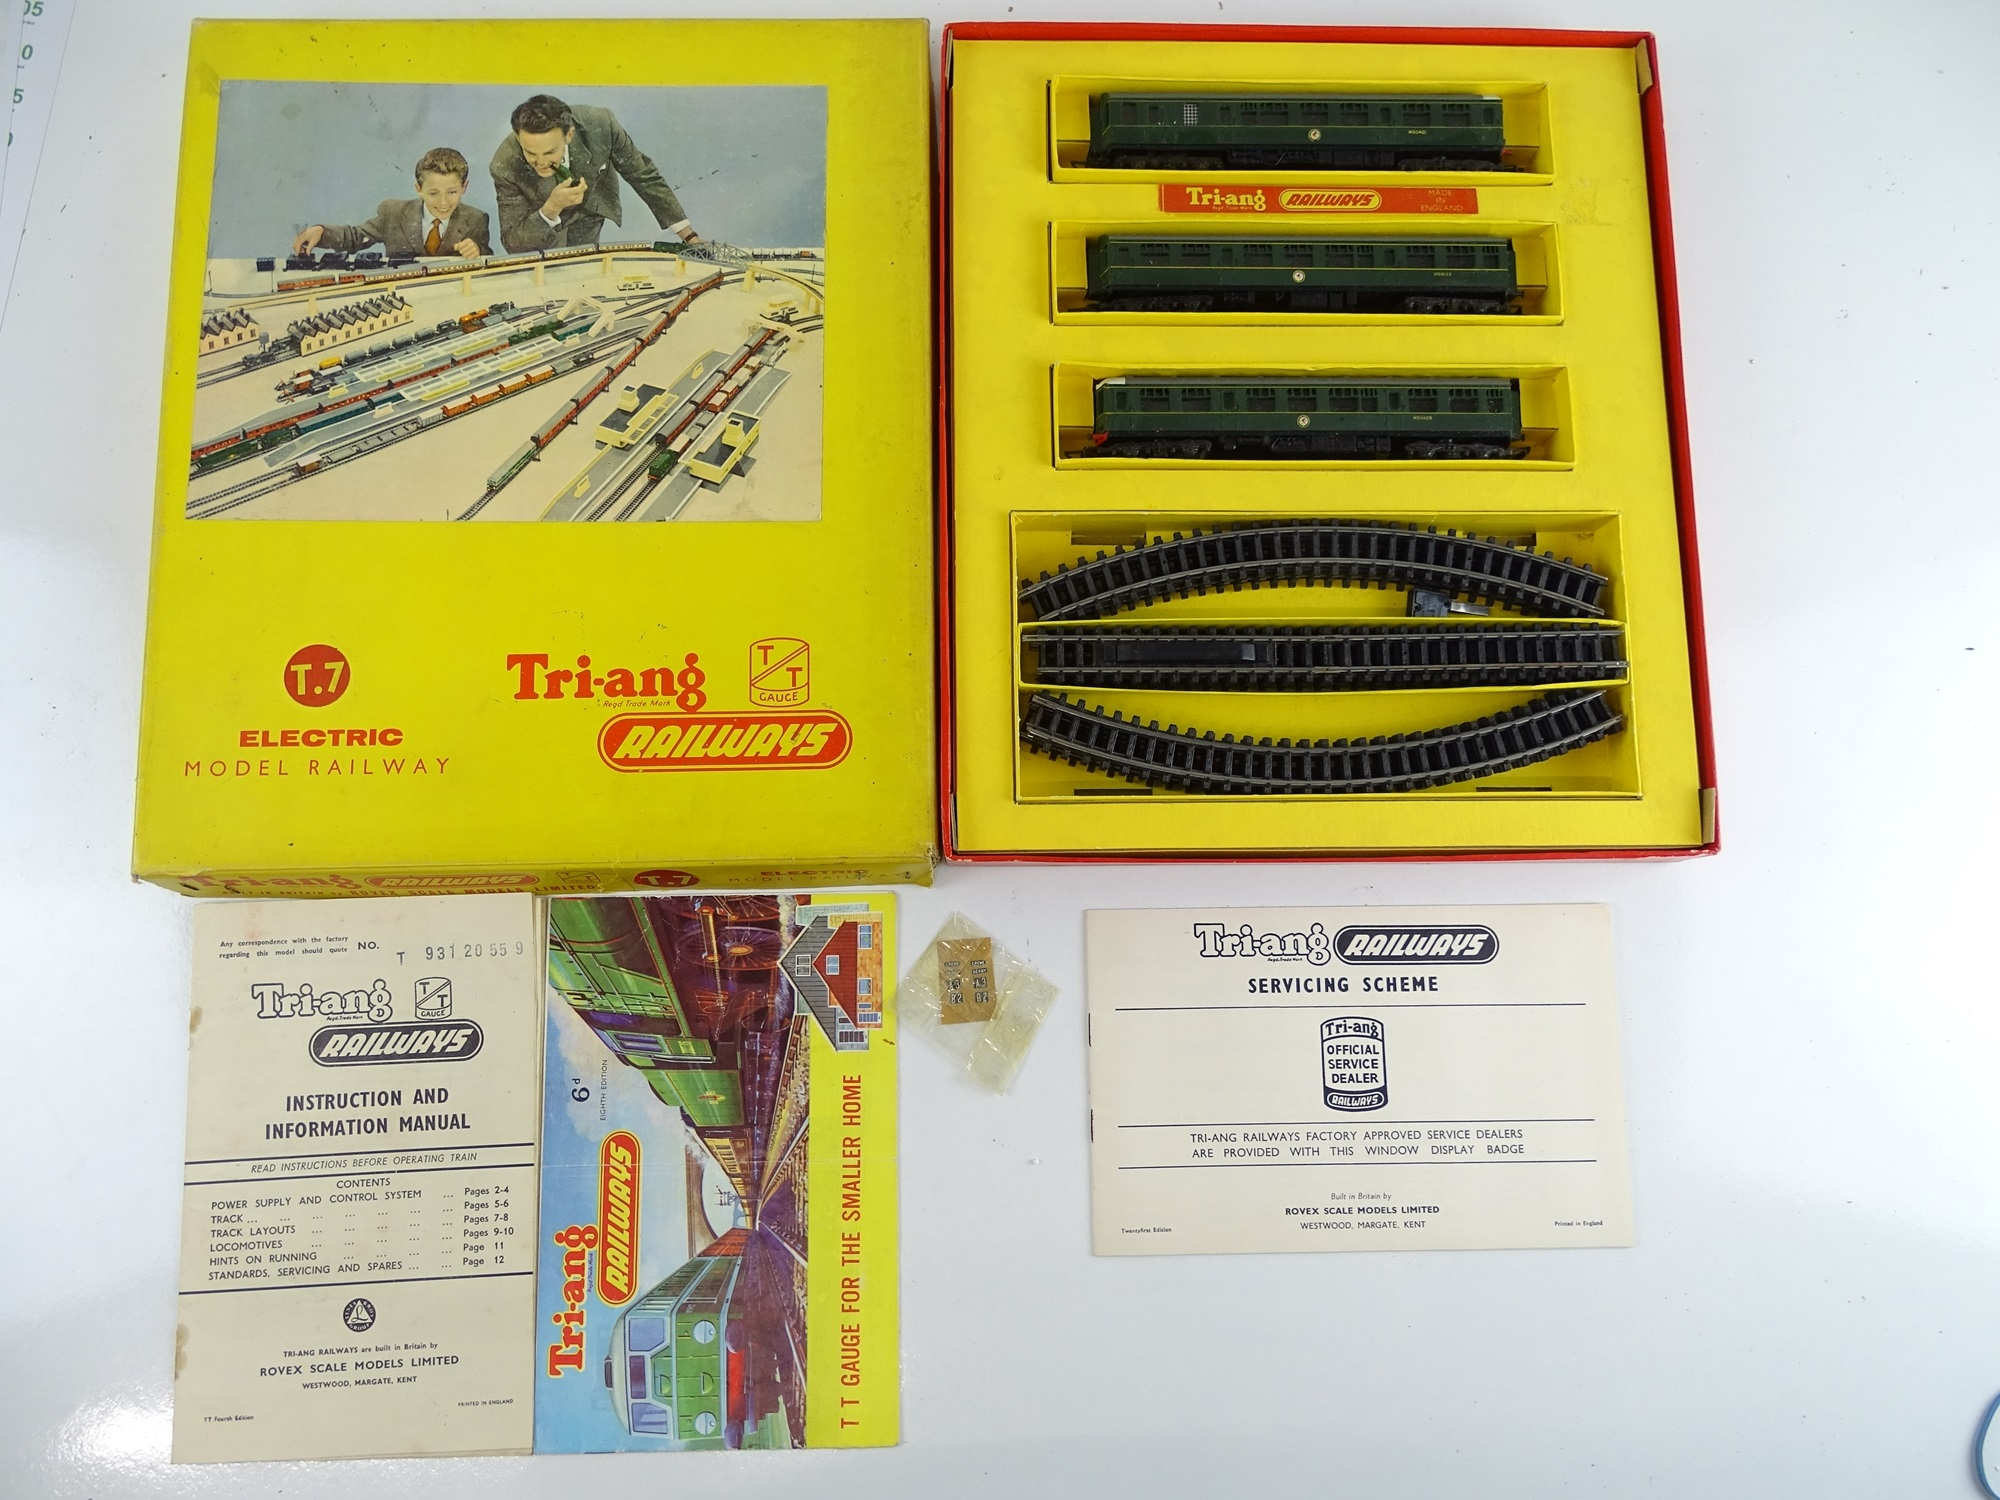 Model Railway and Vintage Toy Auction - 27/03/21